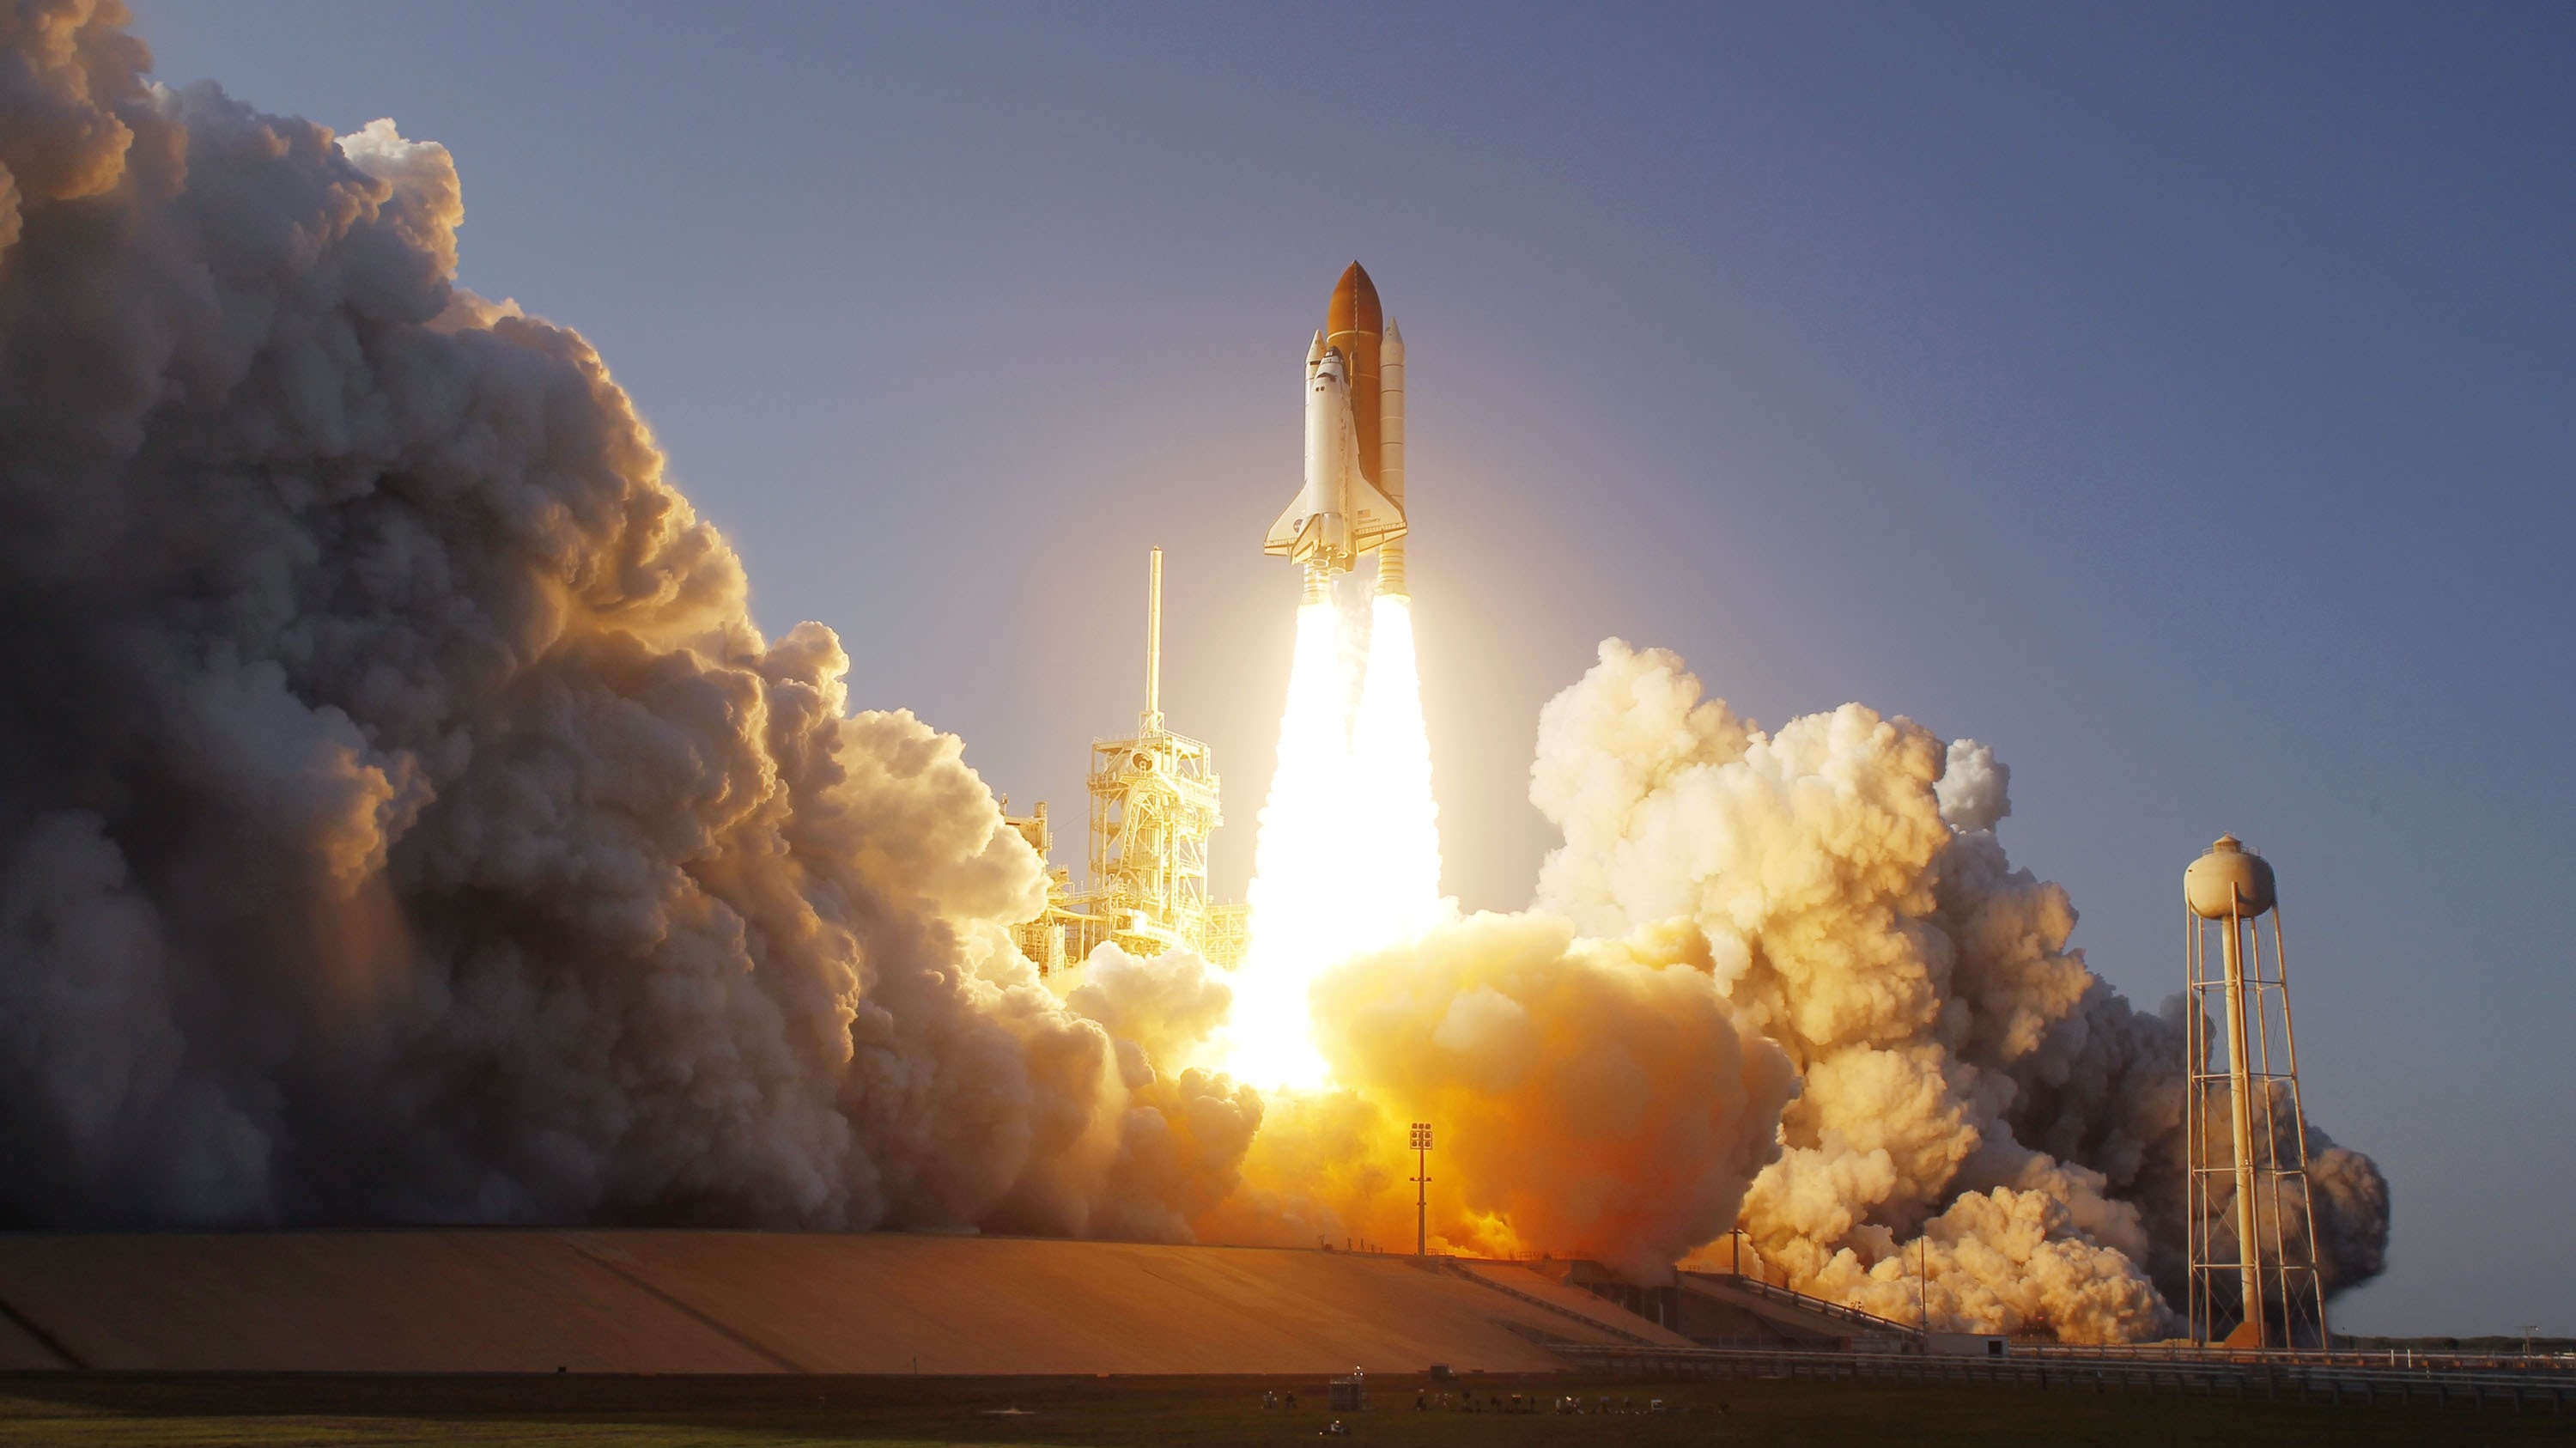 General 3000x1686 spaceship NASA lift off space shuttle space smoke launch pads